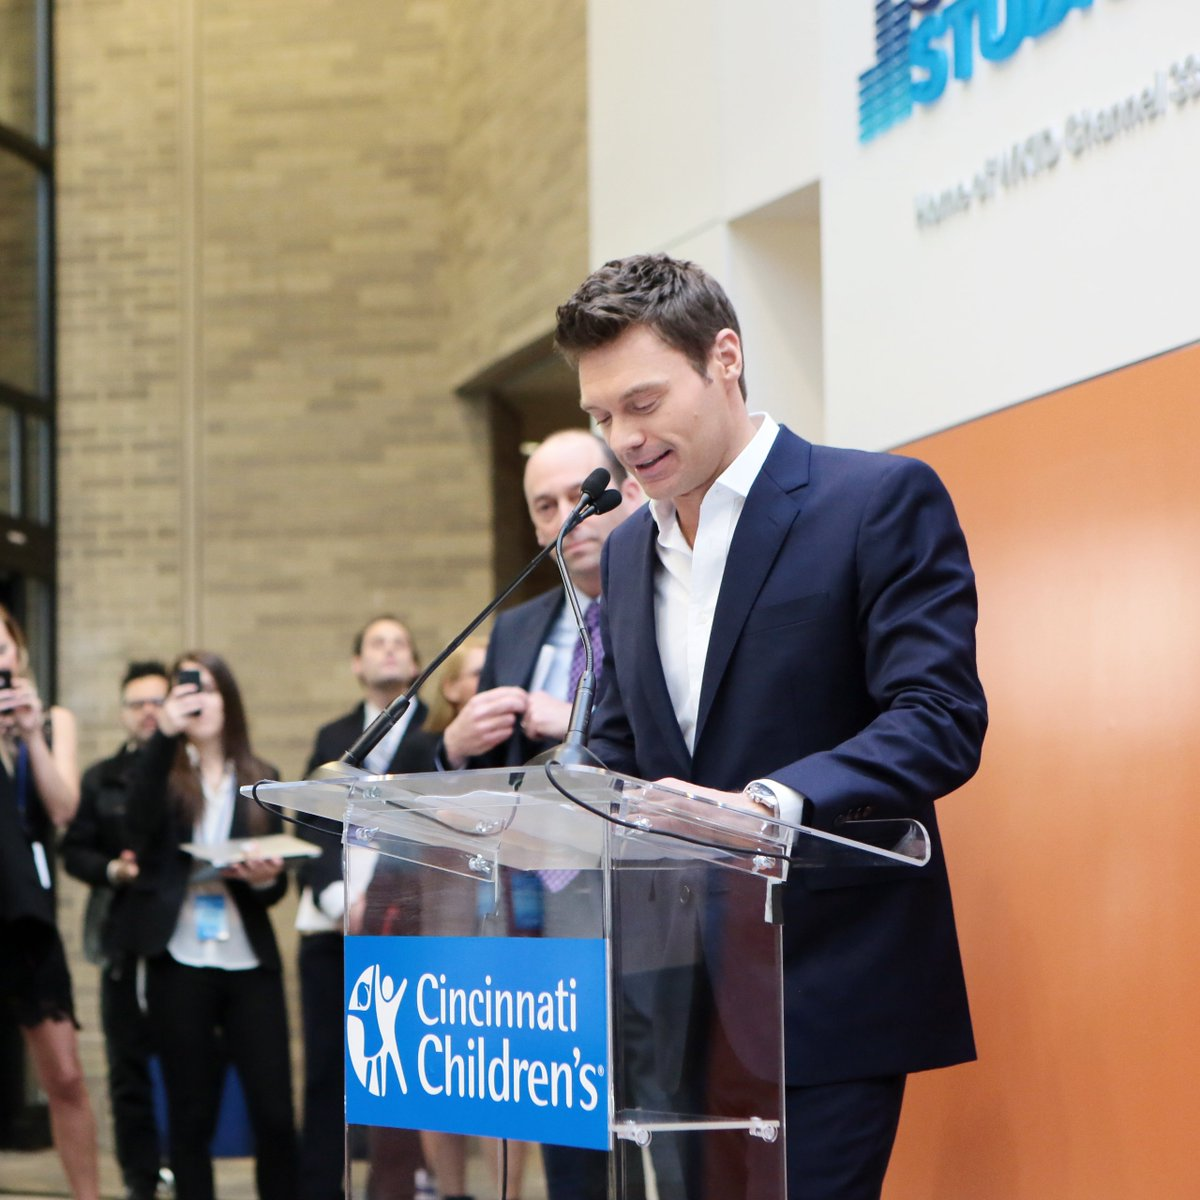 Today wraps our month of studio birthdays! Seven years ago we opened the doors to #SeacrestStudios at @CincyChildrens and we could not be more proud of all the memories they have created with patients since. Stay tuned for more from our celebration!